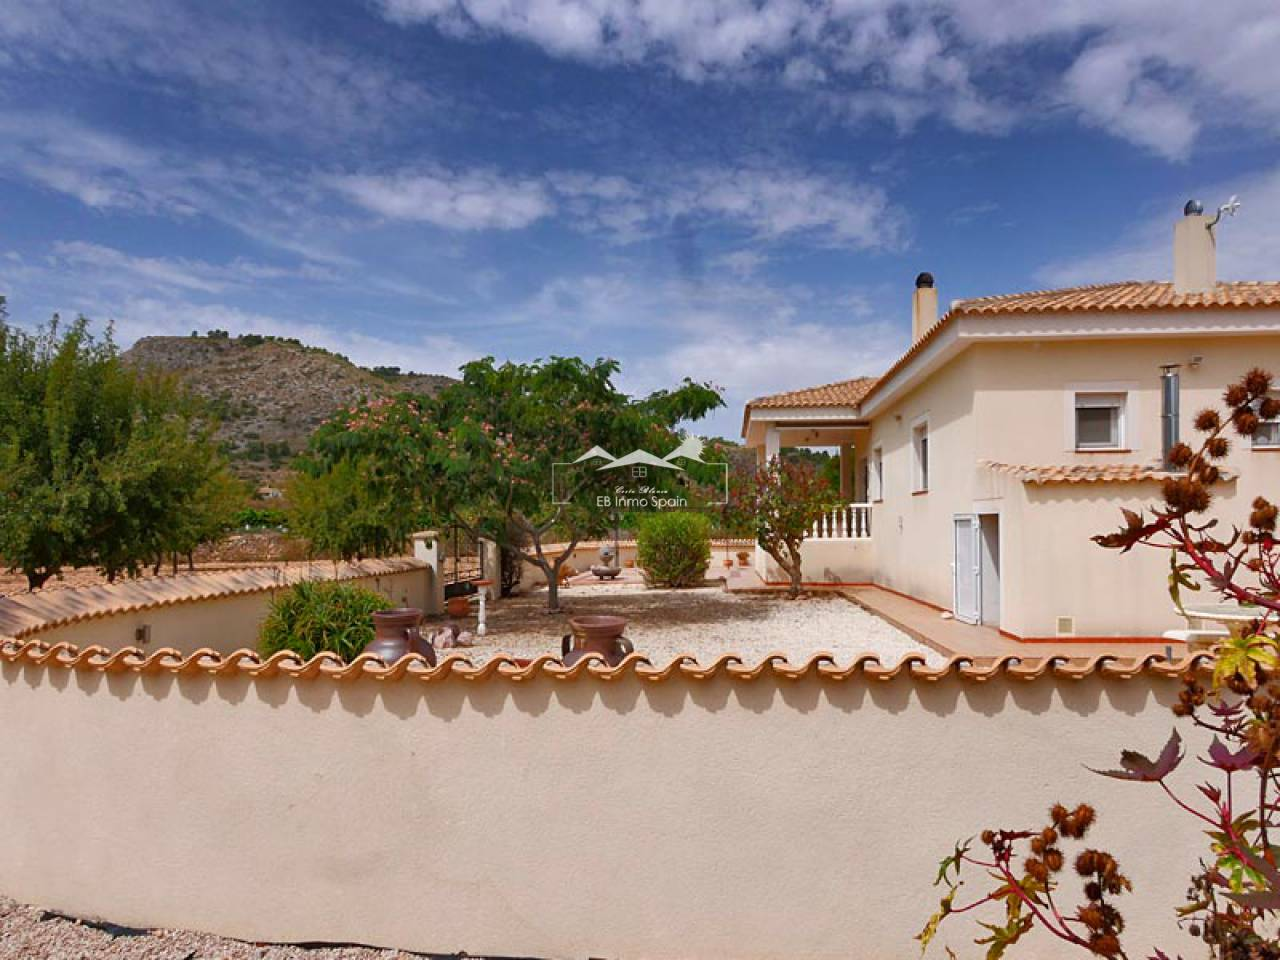 Seconde main - Villa - Hondon De Las Nieves